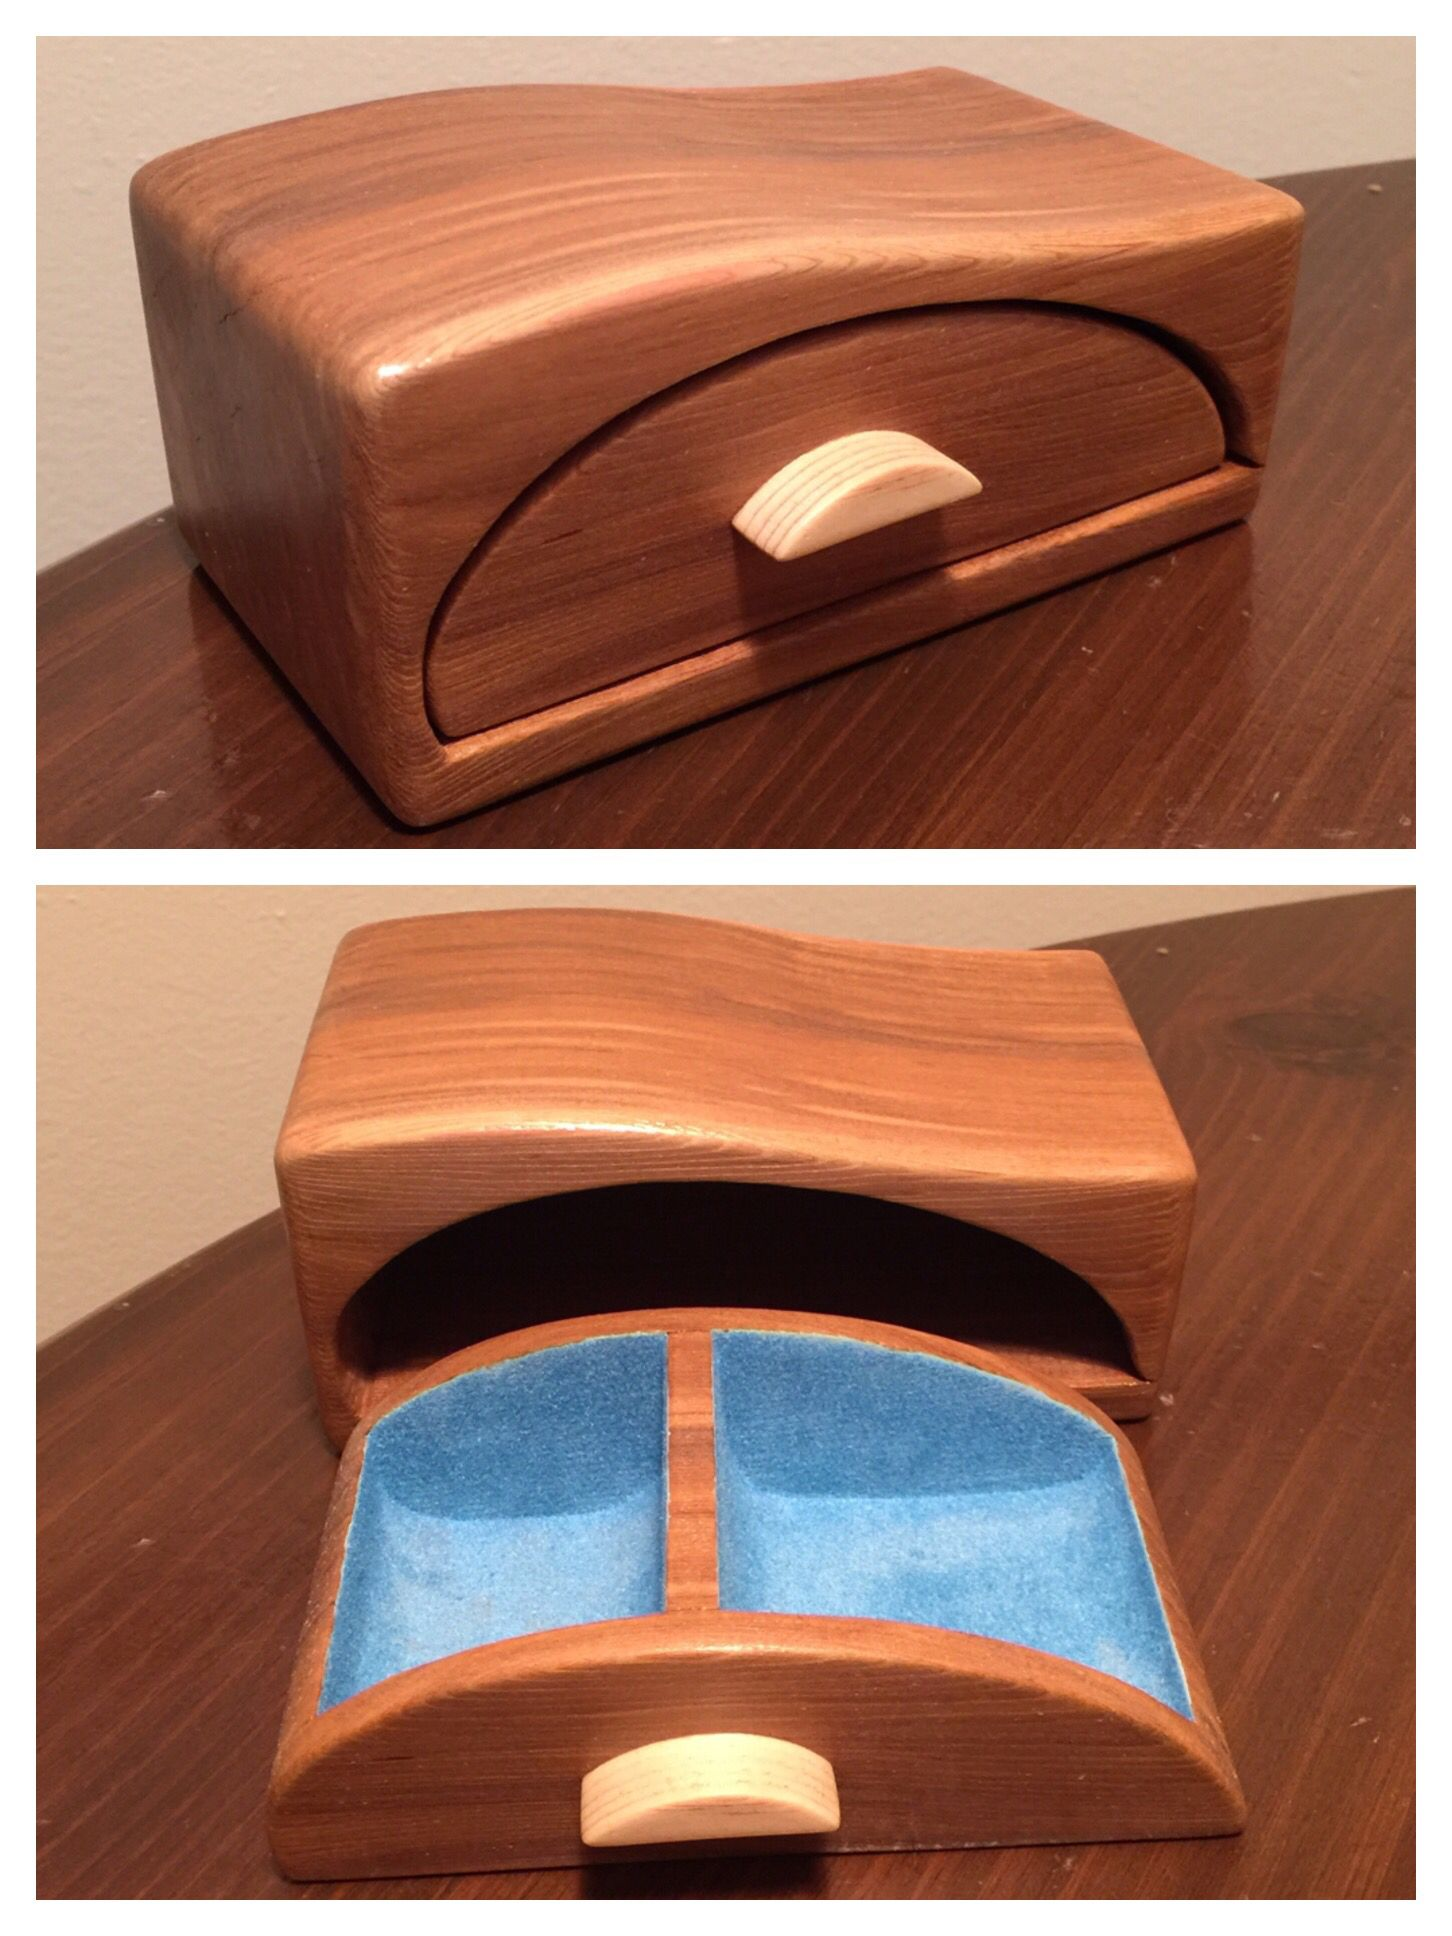 4x4 Wood Crafts Bandsaw Box Made From Cedar 4x4 With Blue Flocking In Drawer 25